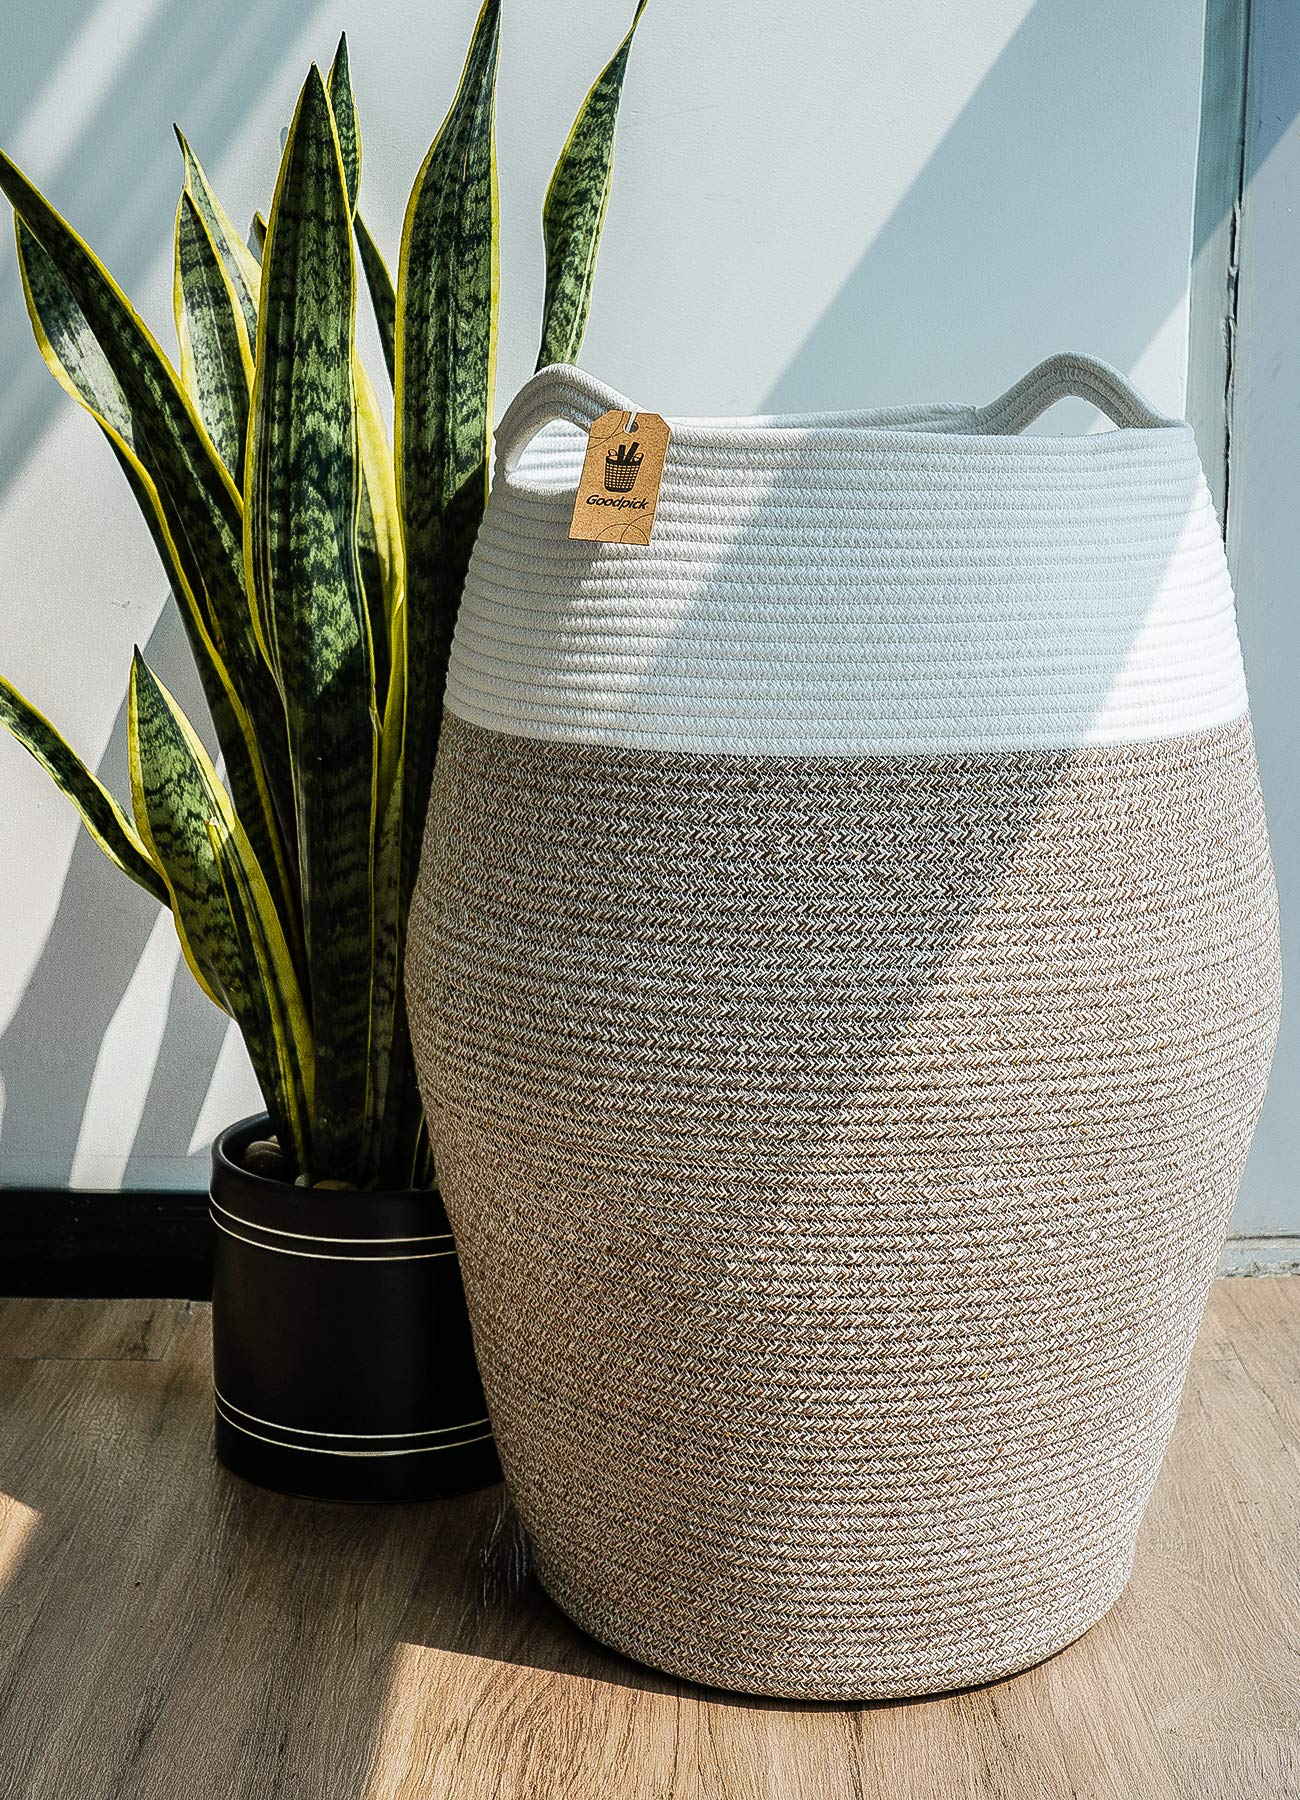 Goodpick Large Laundry Hamper | Woven Cotton Rope Clothes Hamper Tall Laundry Basket, Modern Curver Bucket 25.6'' Height by Goodpick